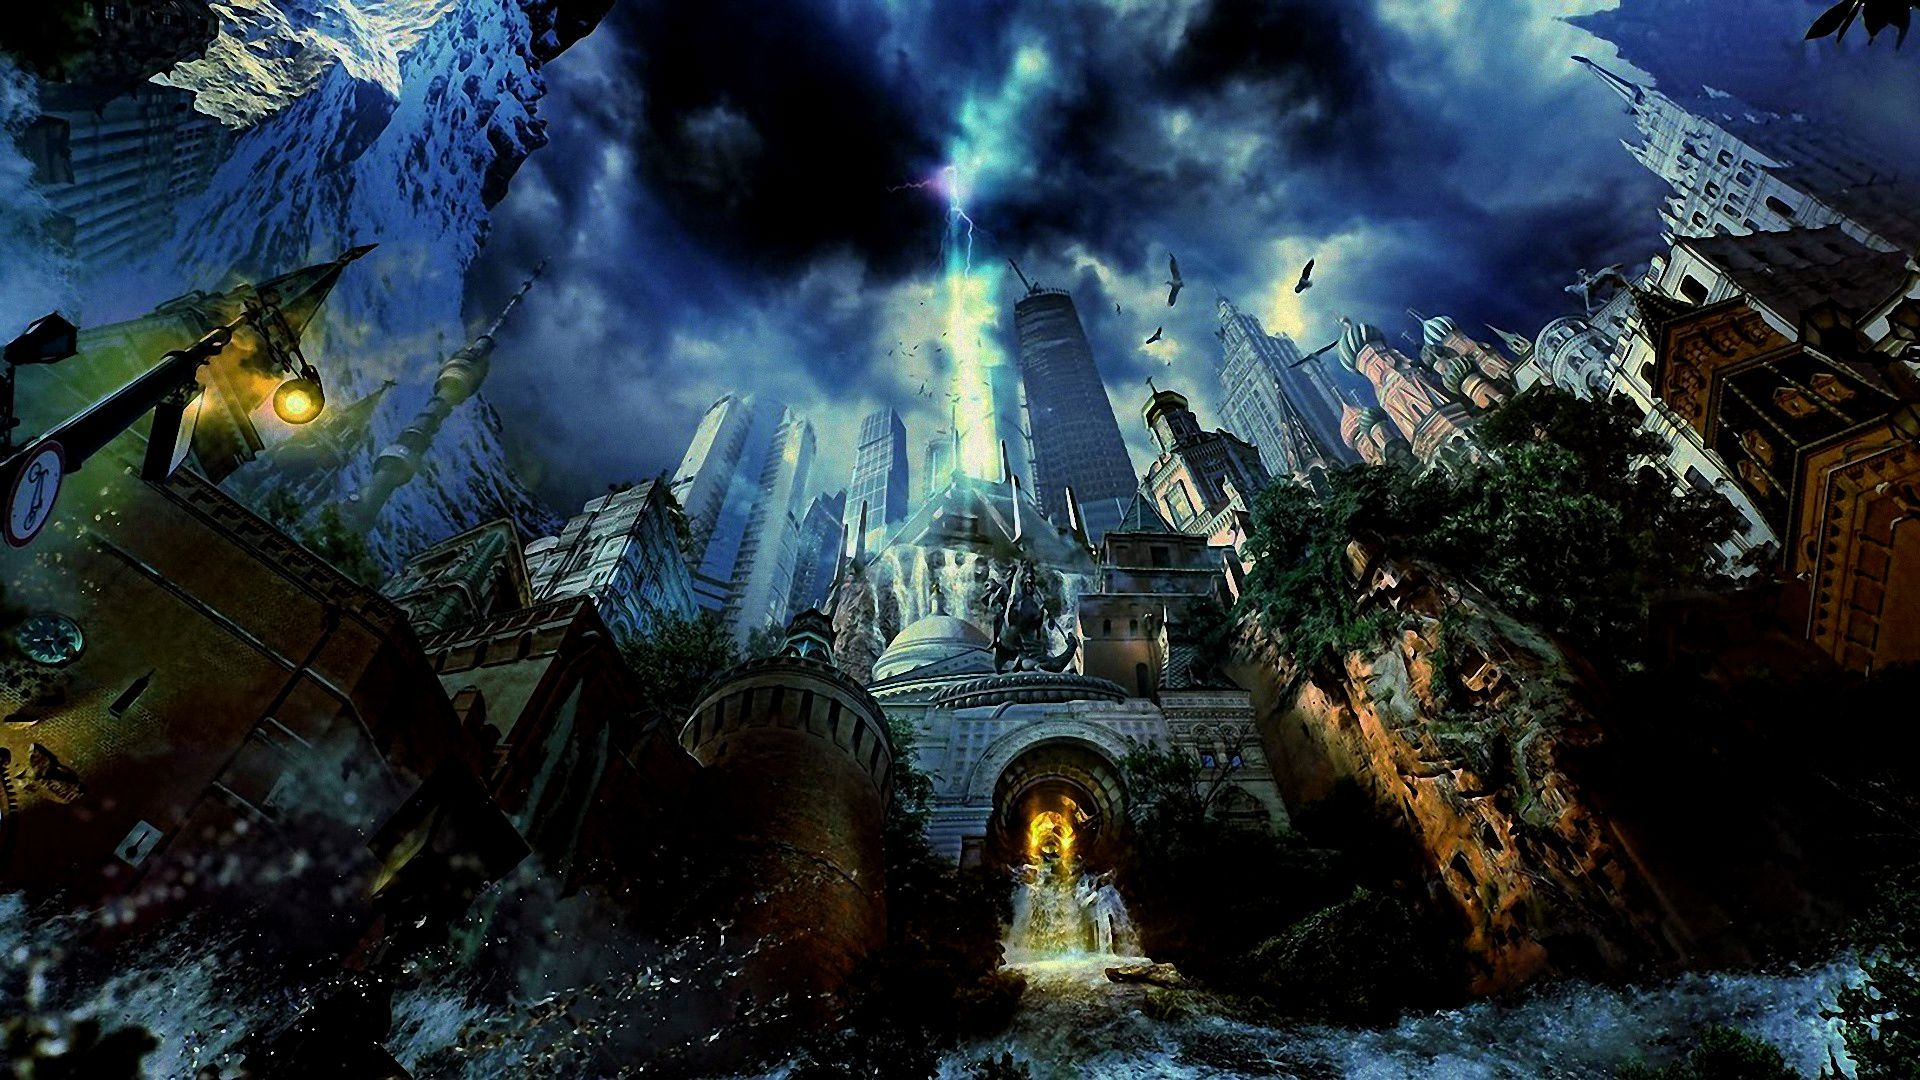 Fantasy City Wallpaper Hd: Hd Fantasy Wallpapers 1080p